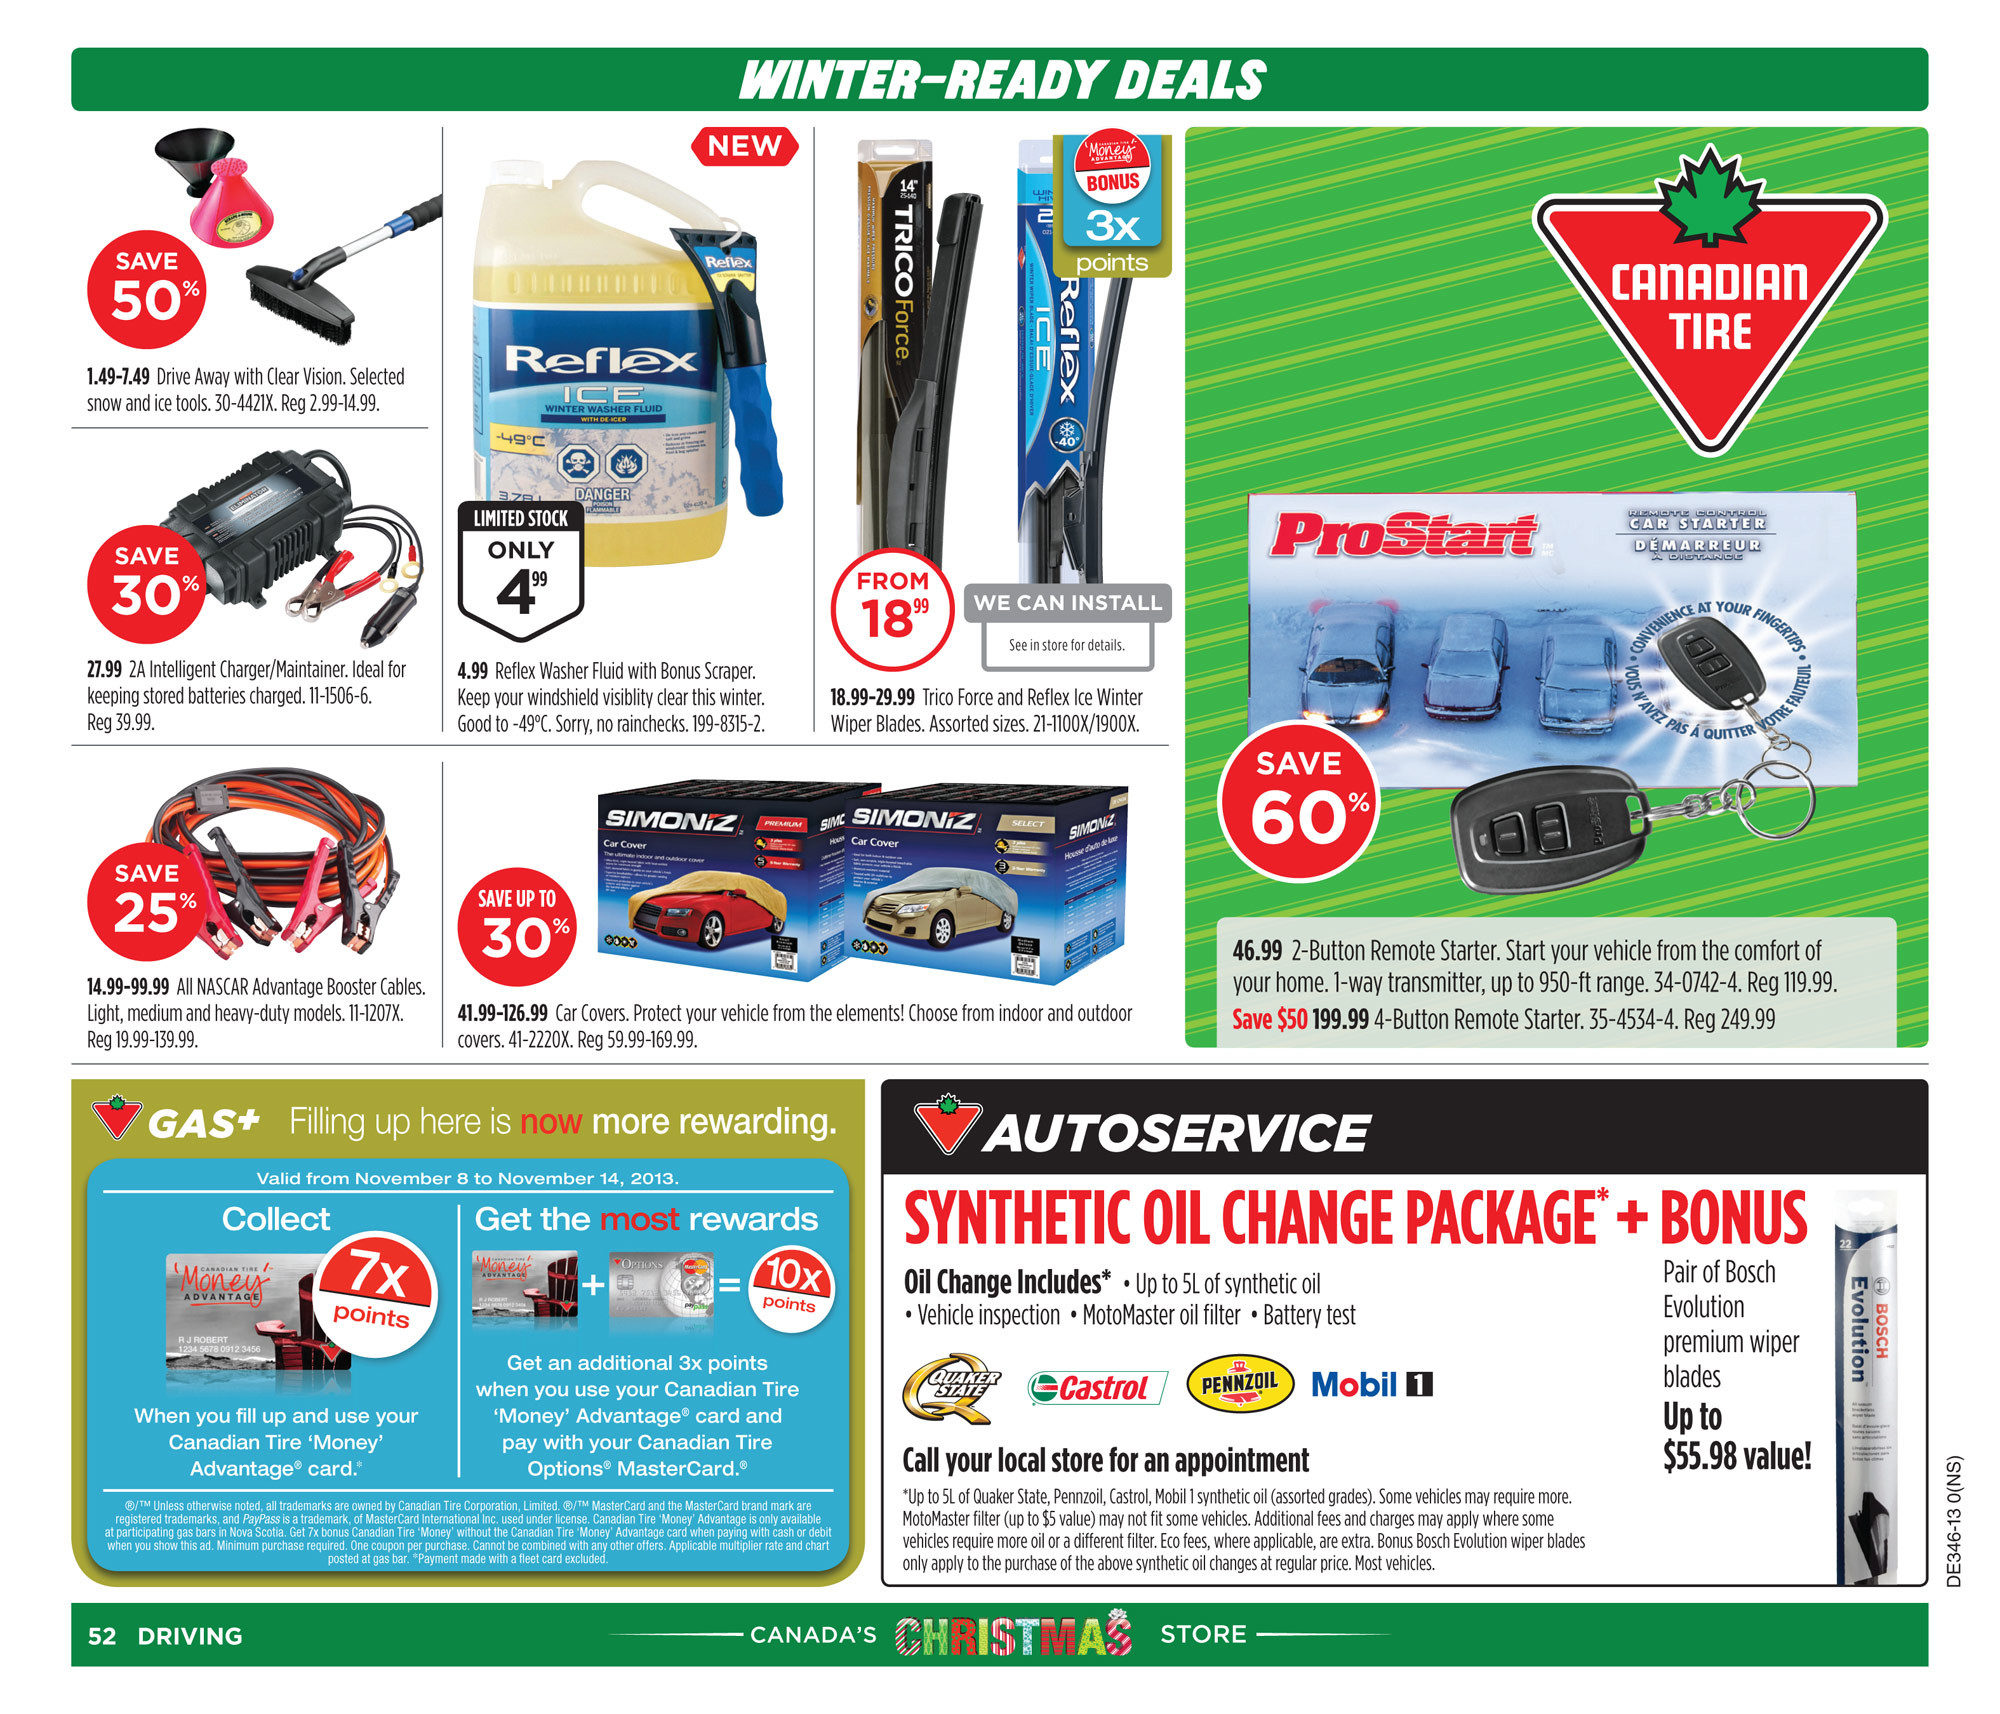 Canadian Tire Weekly Flyer - Weekly Flyer - Nov 7 – 14 - RedFlagDeals.com